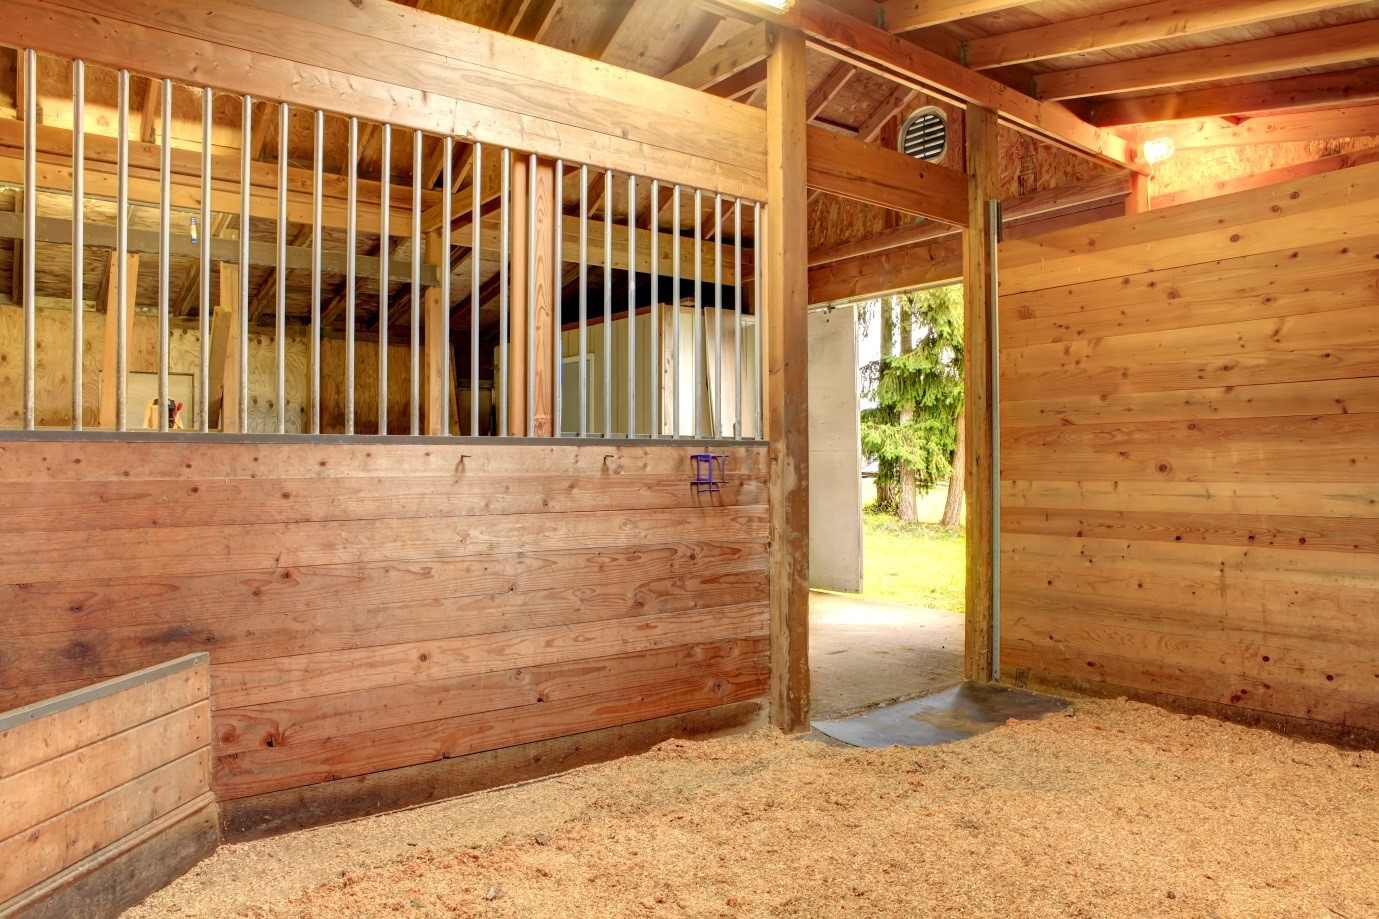 Effective Stall Cleaning For Maximized Horse Health Comfort Morgan Murphy S Blog Community Spalding Labs